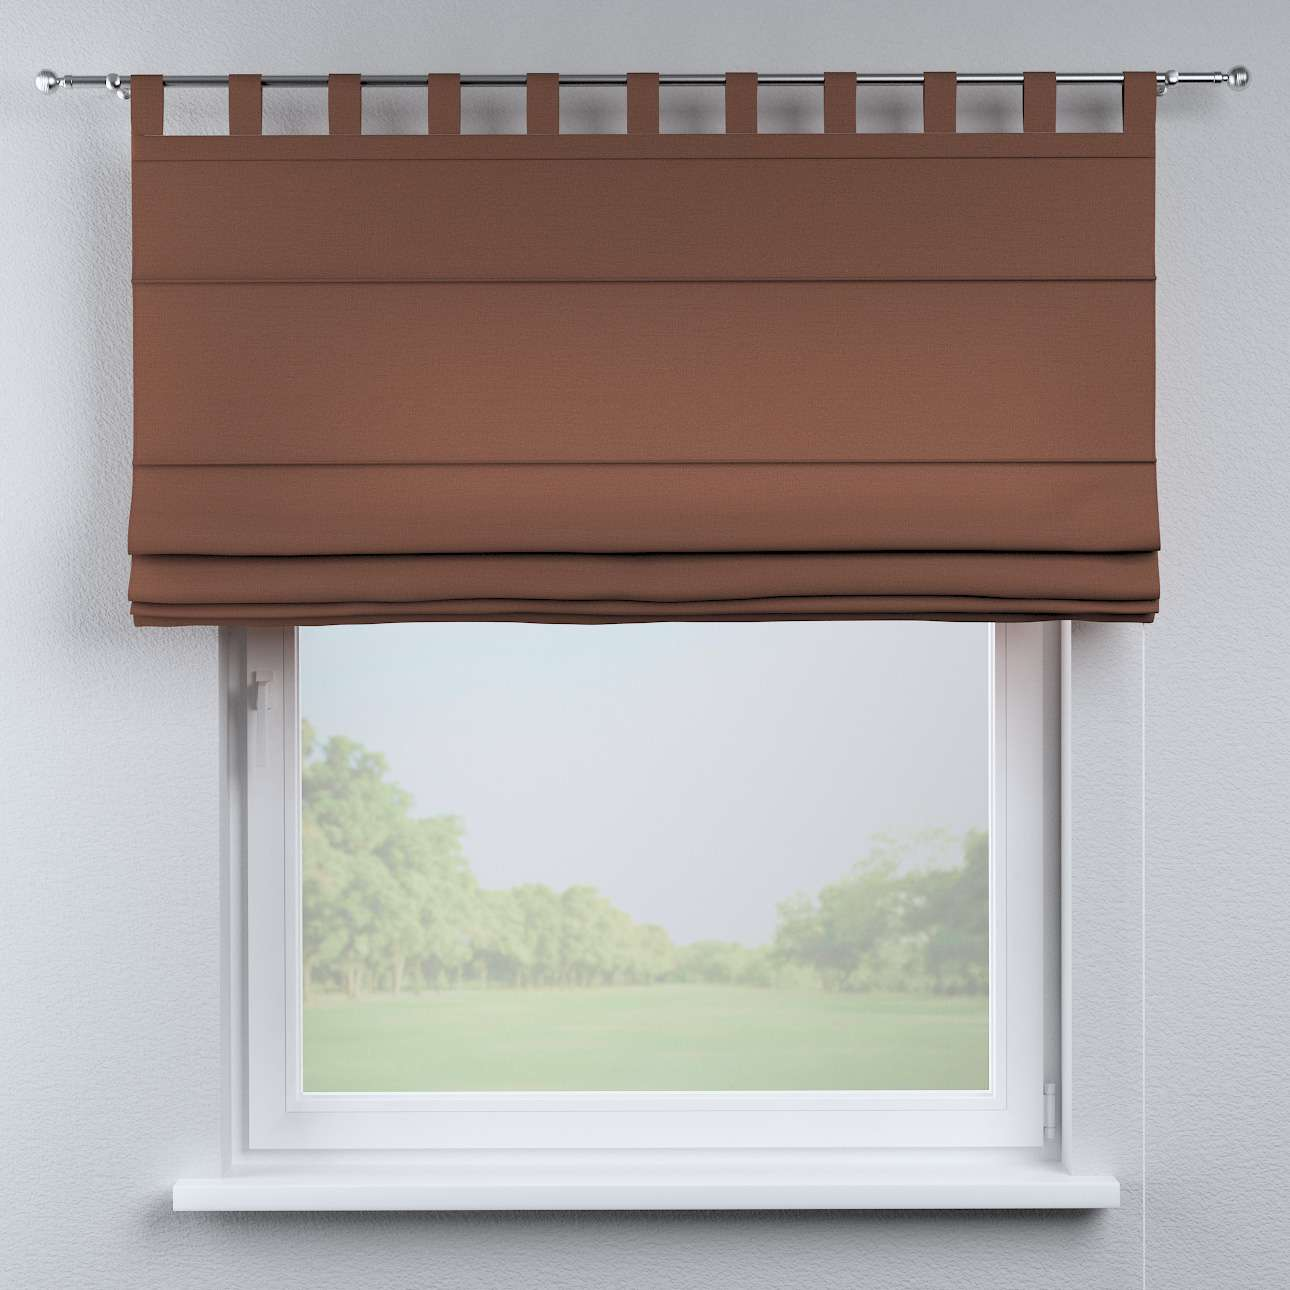 Verona tab top roman blind 80 x 170 cm (31.5 x 67 inch) in collection Loneta , fabric: 133-09